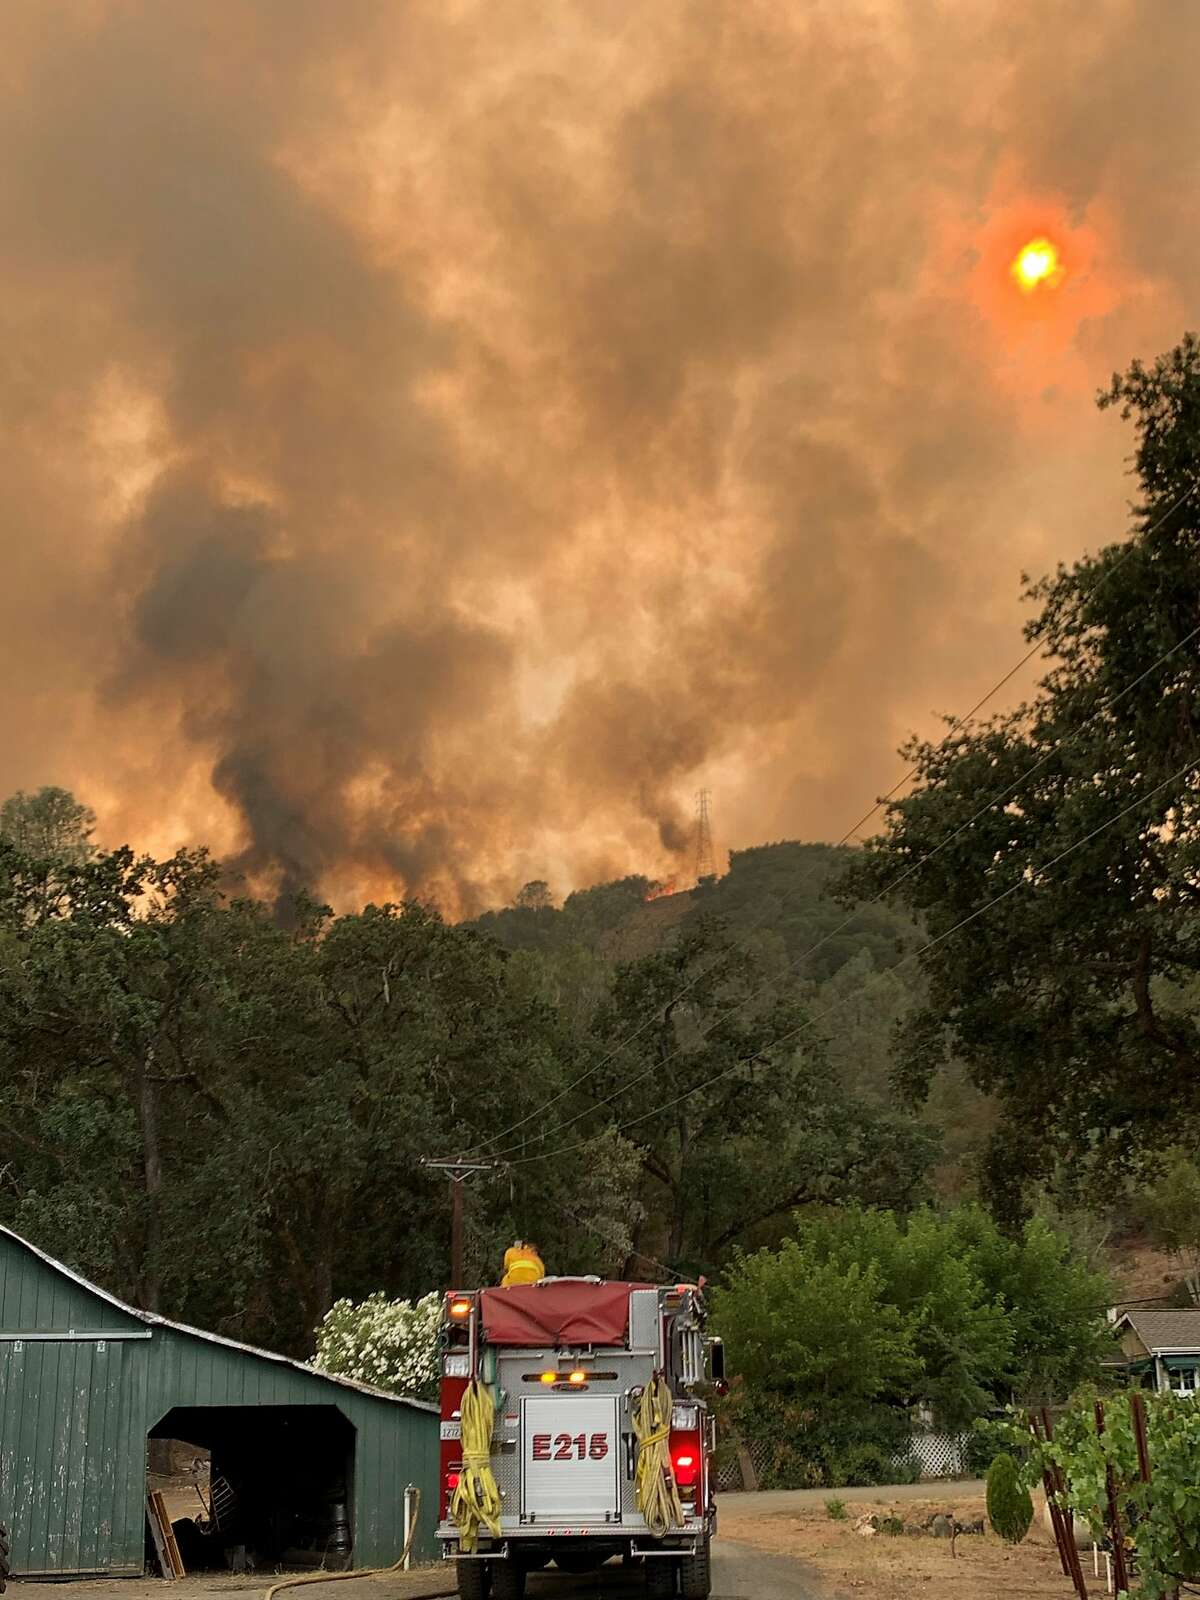 Volunteer firefighters from Napa County's Station 15 fight the Hennessey Fire in August 2020.